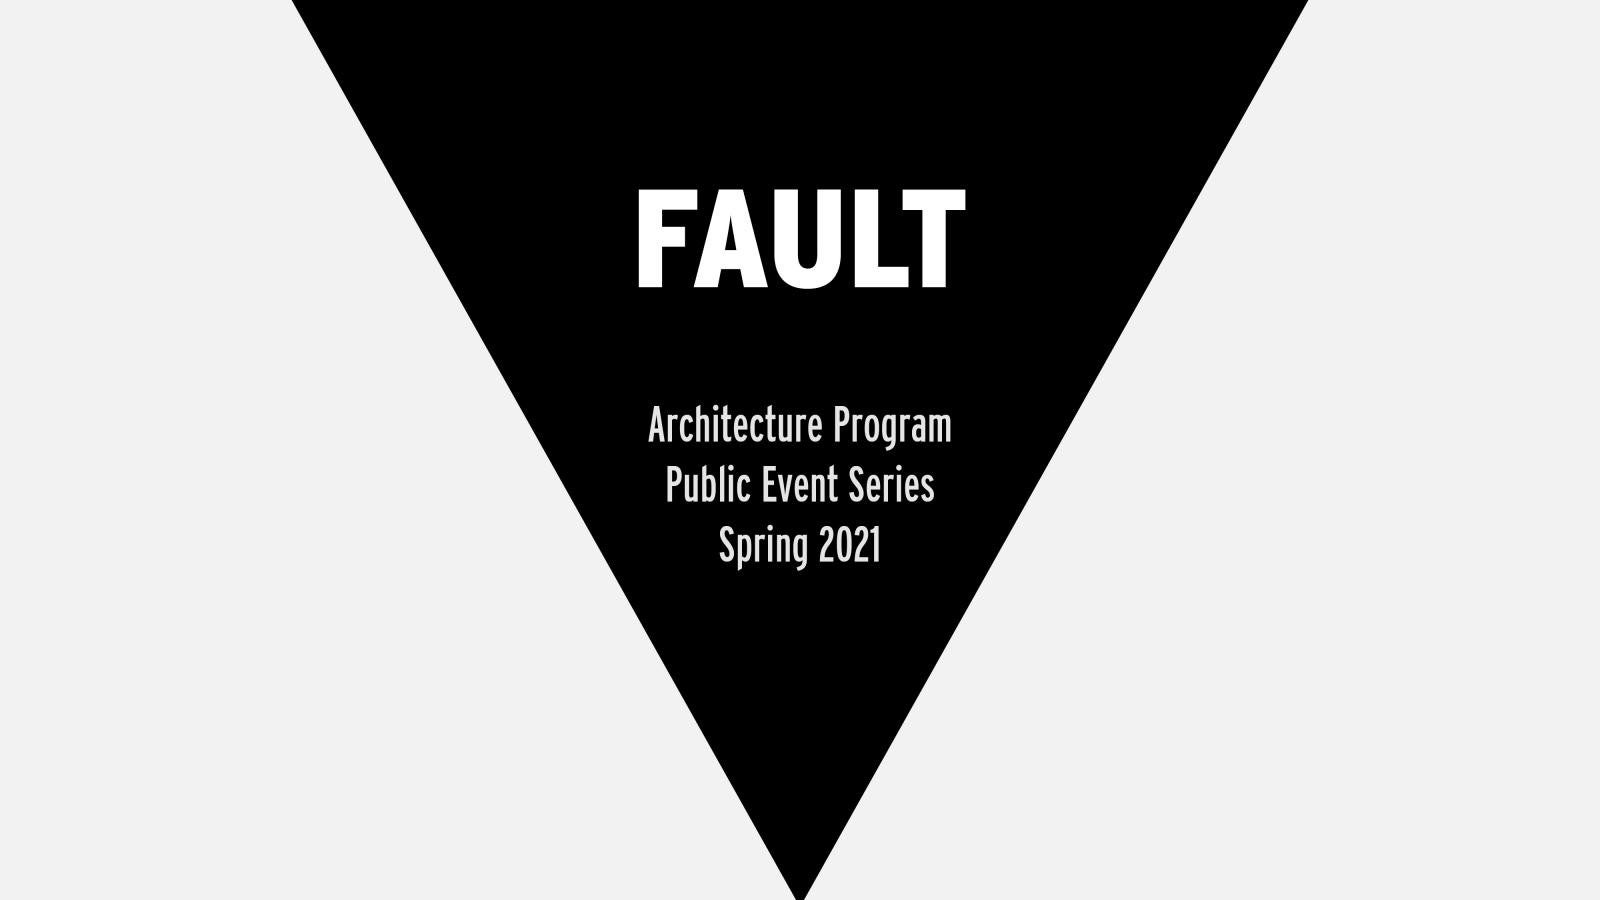 FAULT Architecture Program Public Event Series Spring 2021